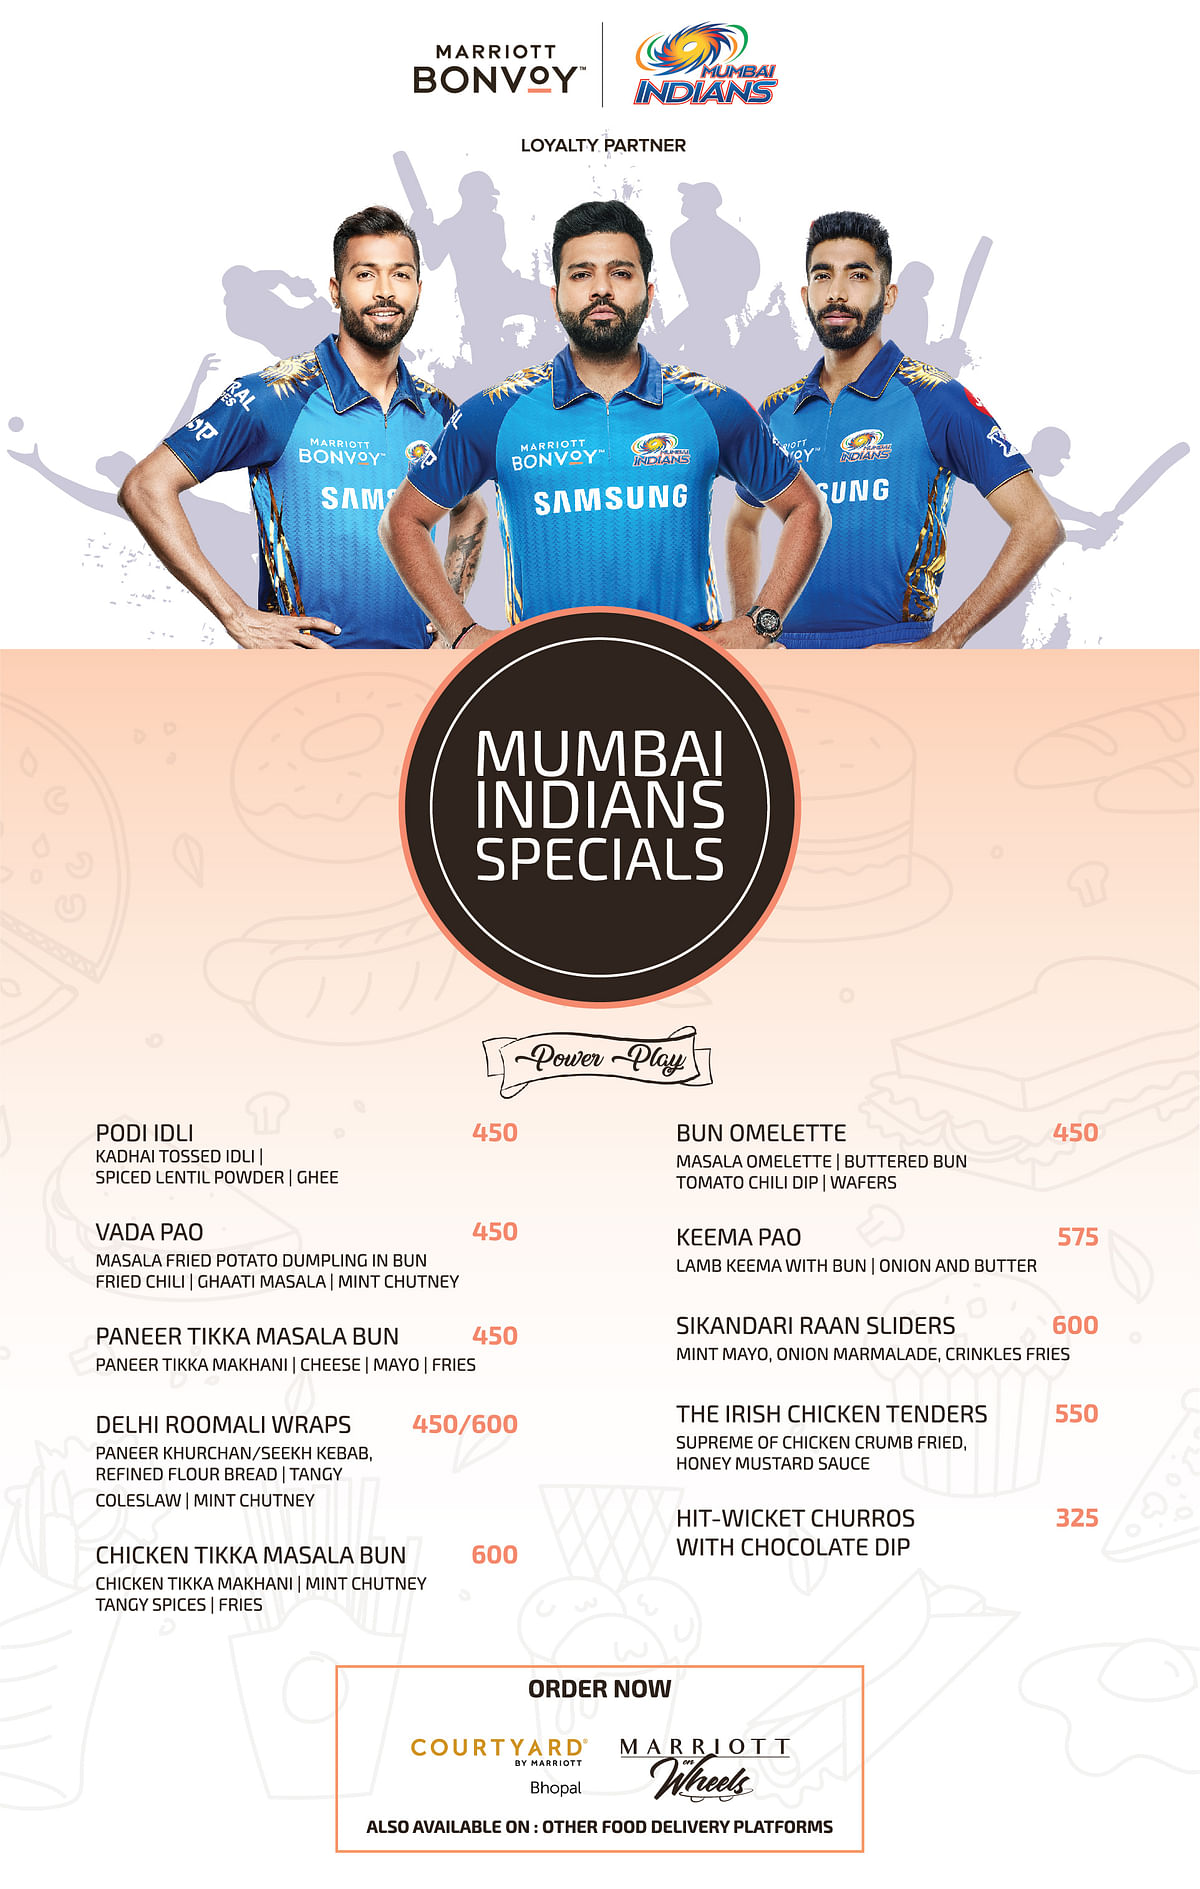 Bhopal: With the raging IPL fever, the Courtyard by Marriott serves Mumbai Indians themed meals